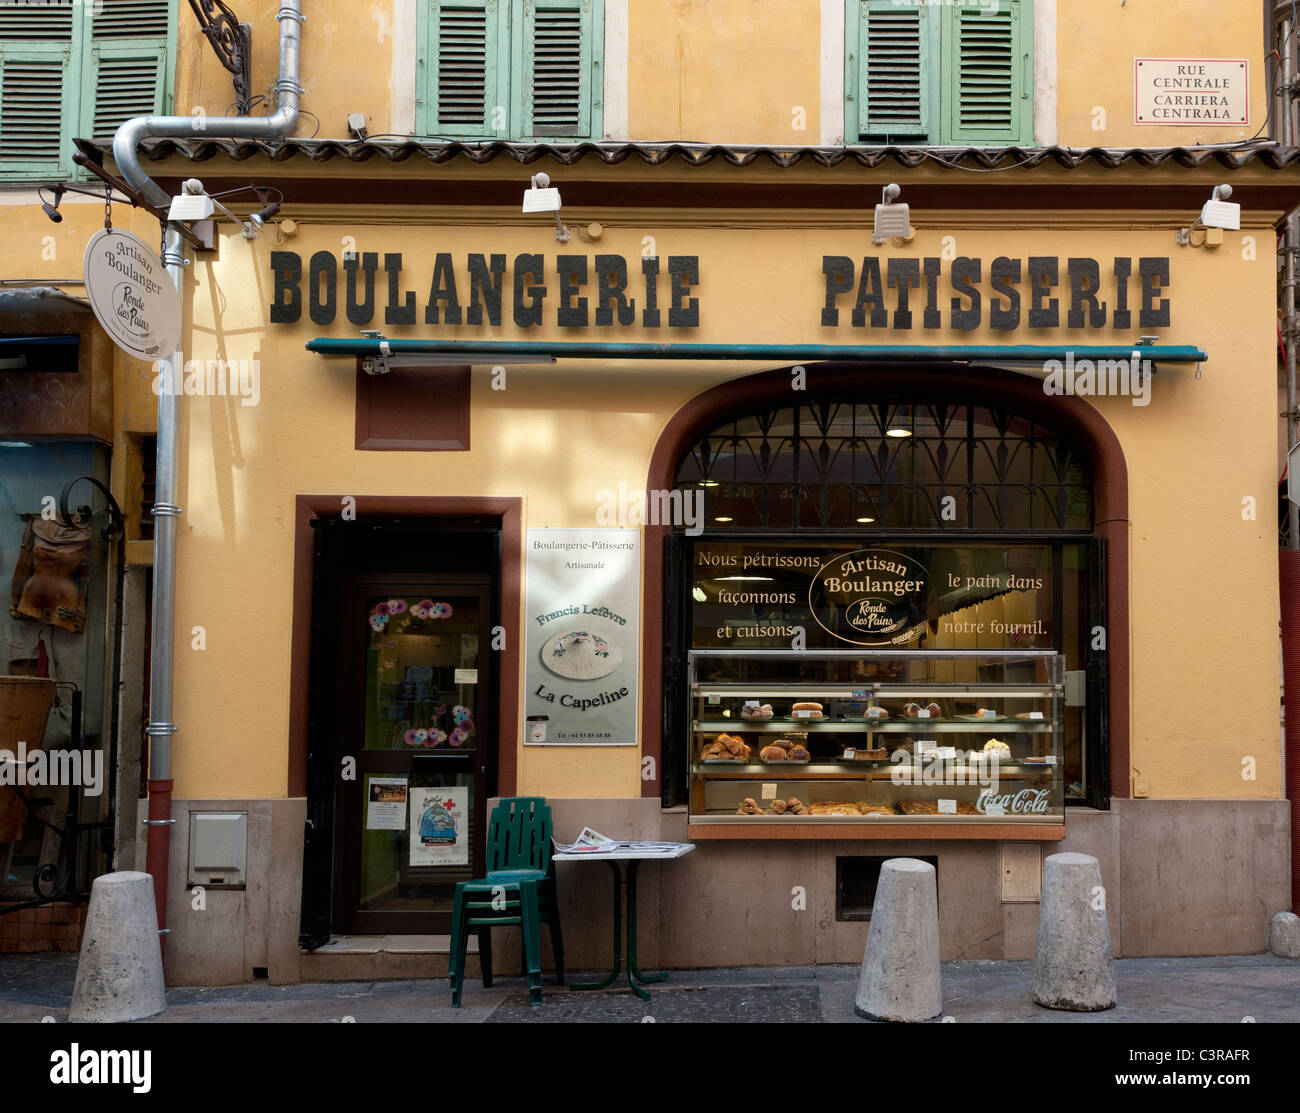 A Boulangerie in Rue Centrale in the Old Town district of Nice - Stock Image